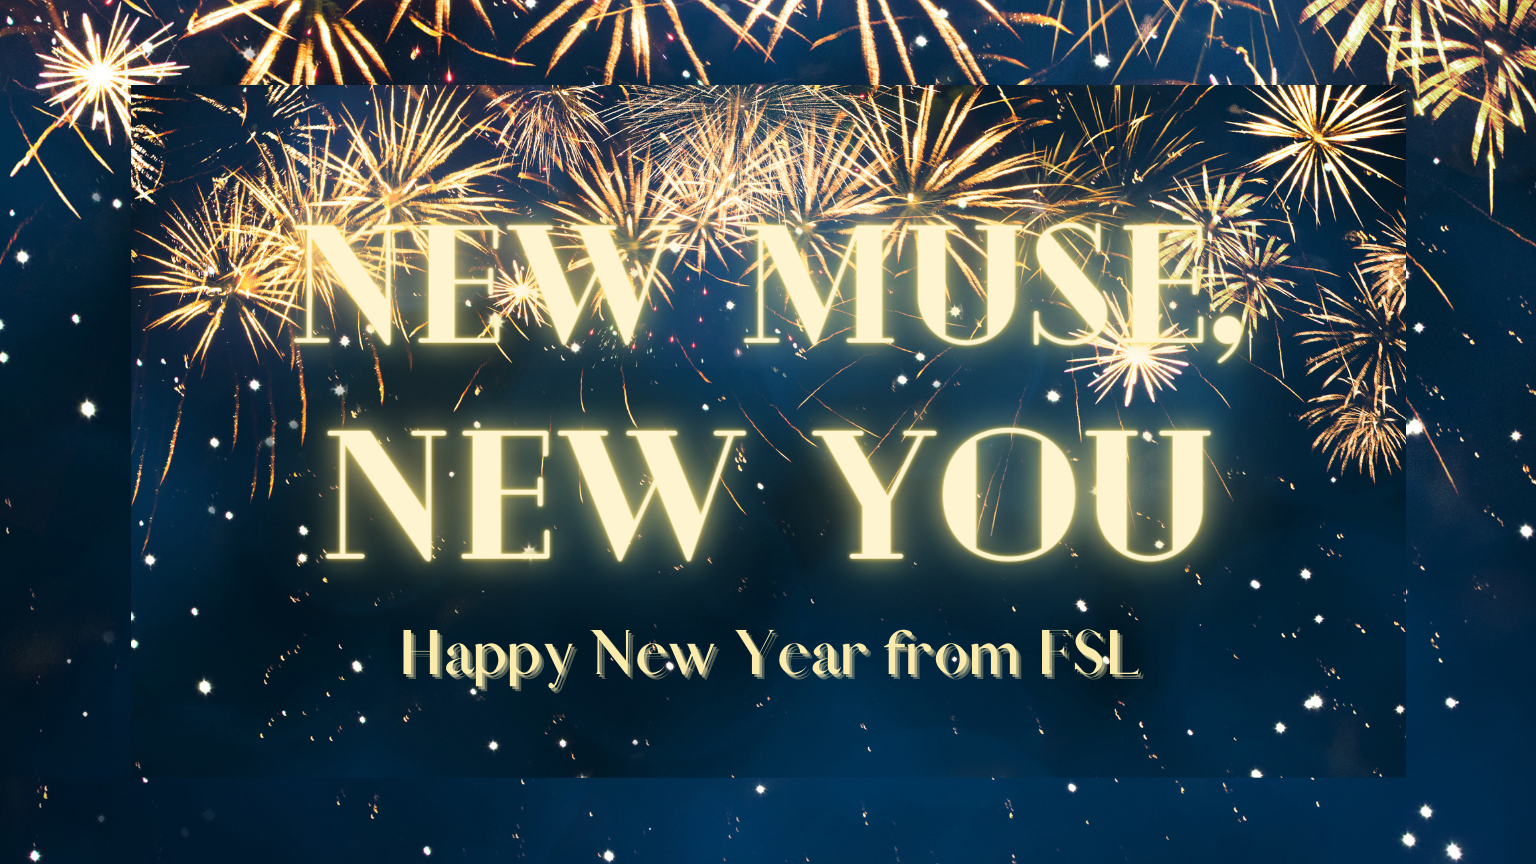 New Muse, New You